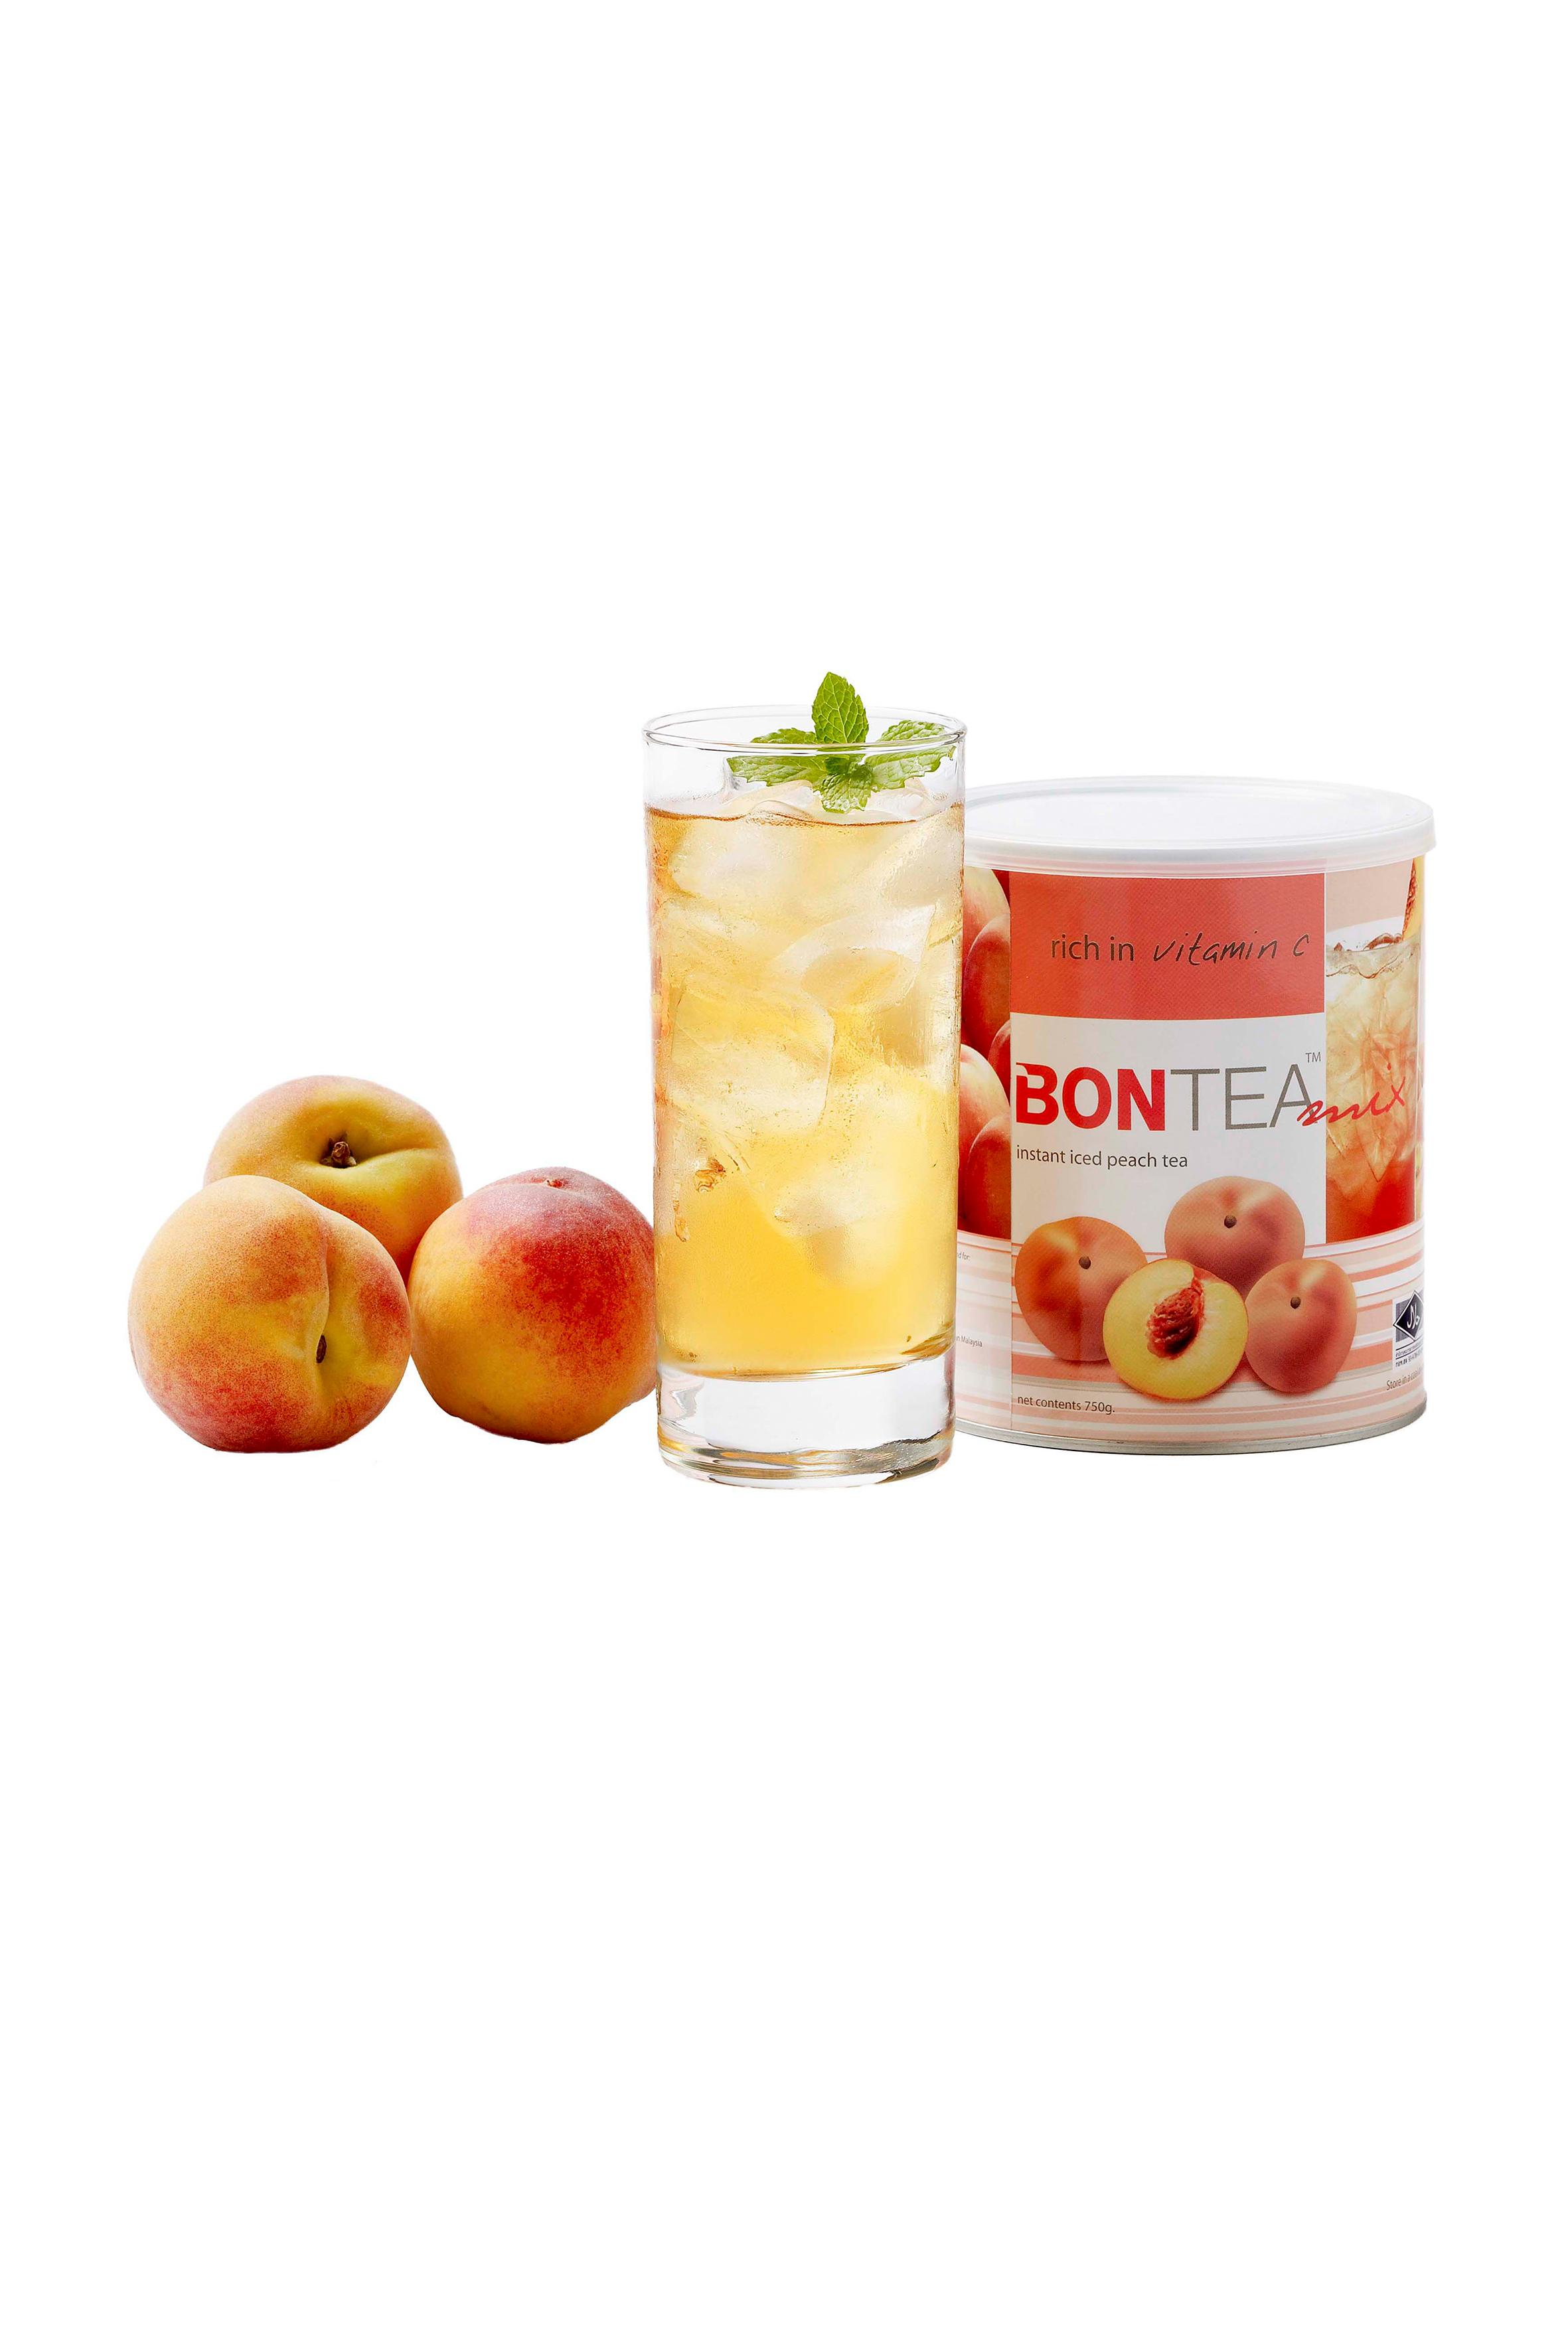 Bontea Mix Instant Iced Peach Flavoured Tea